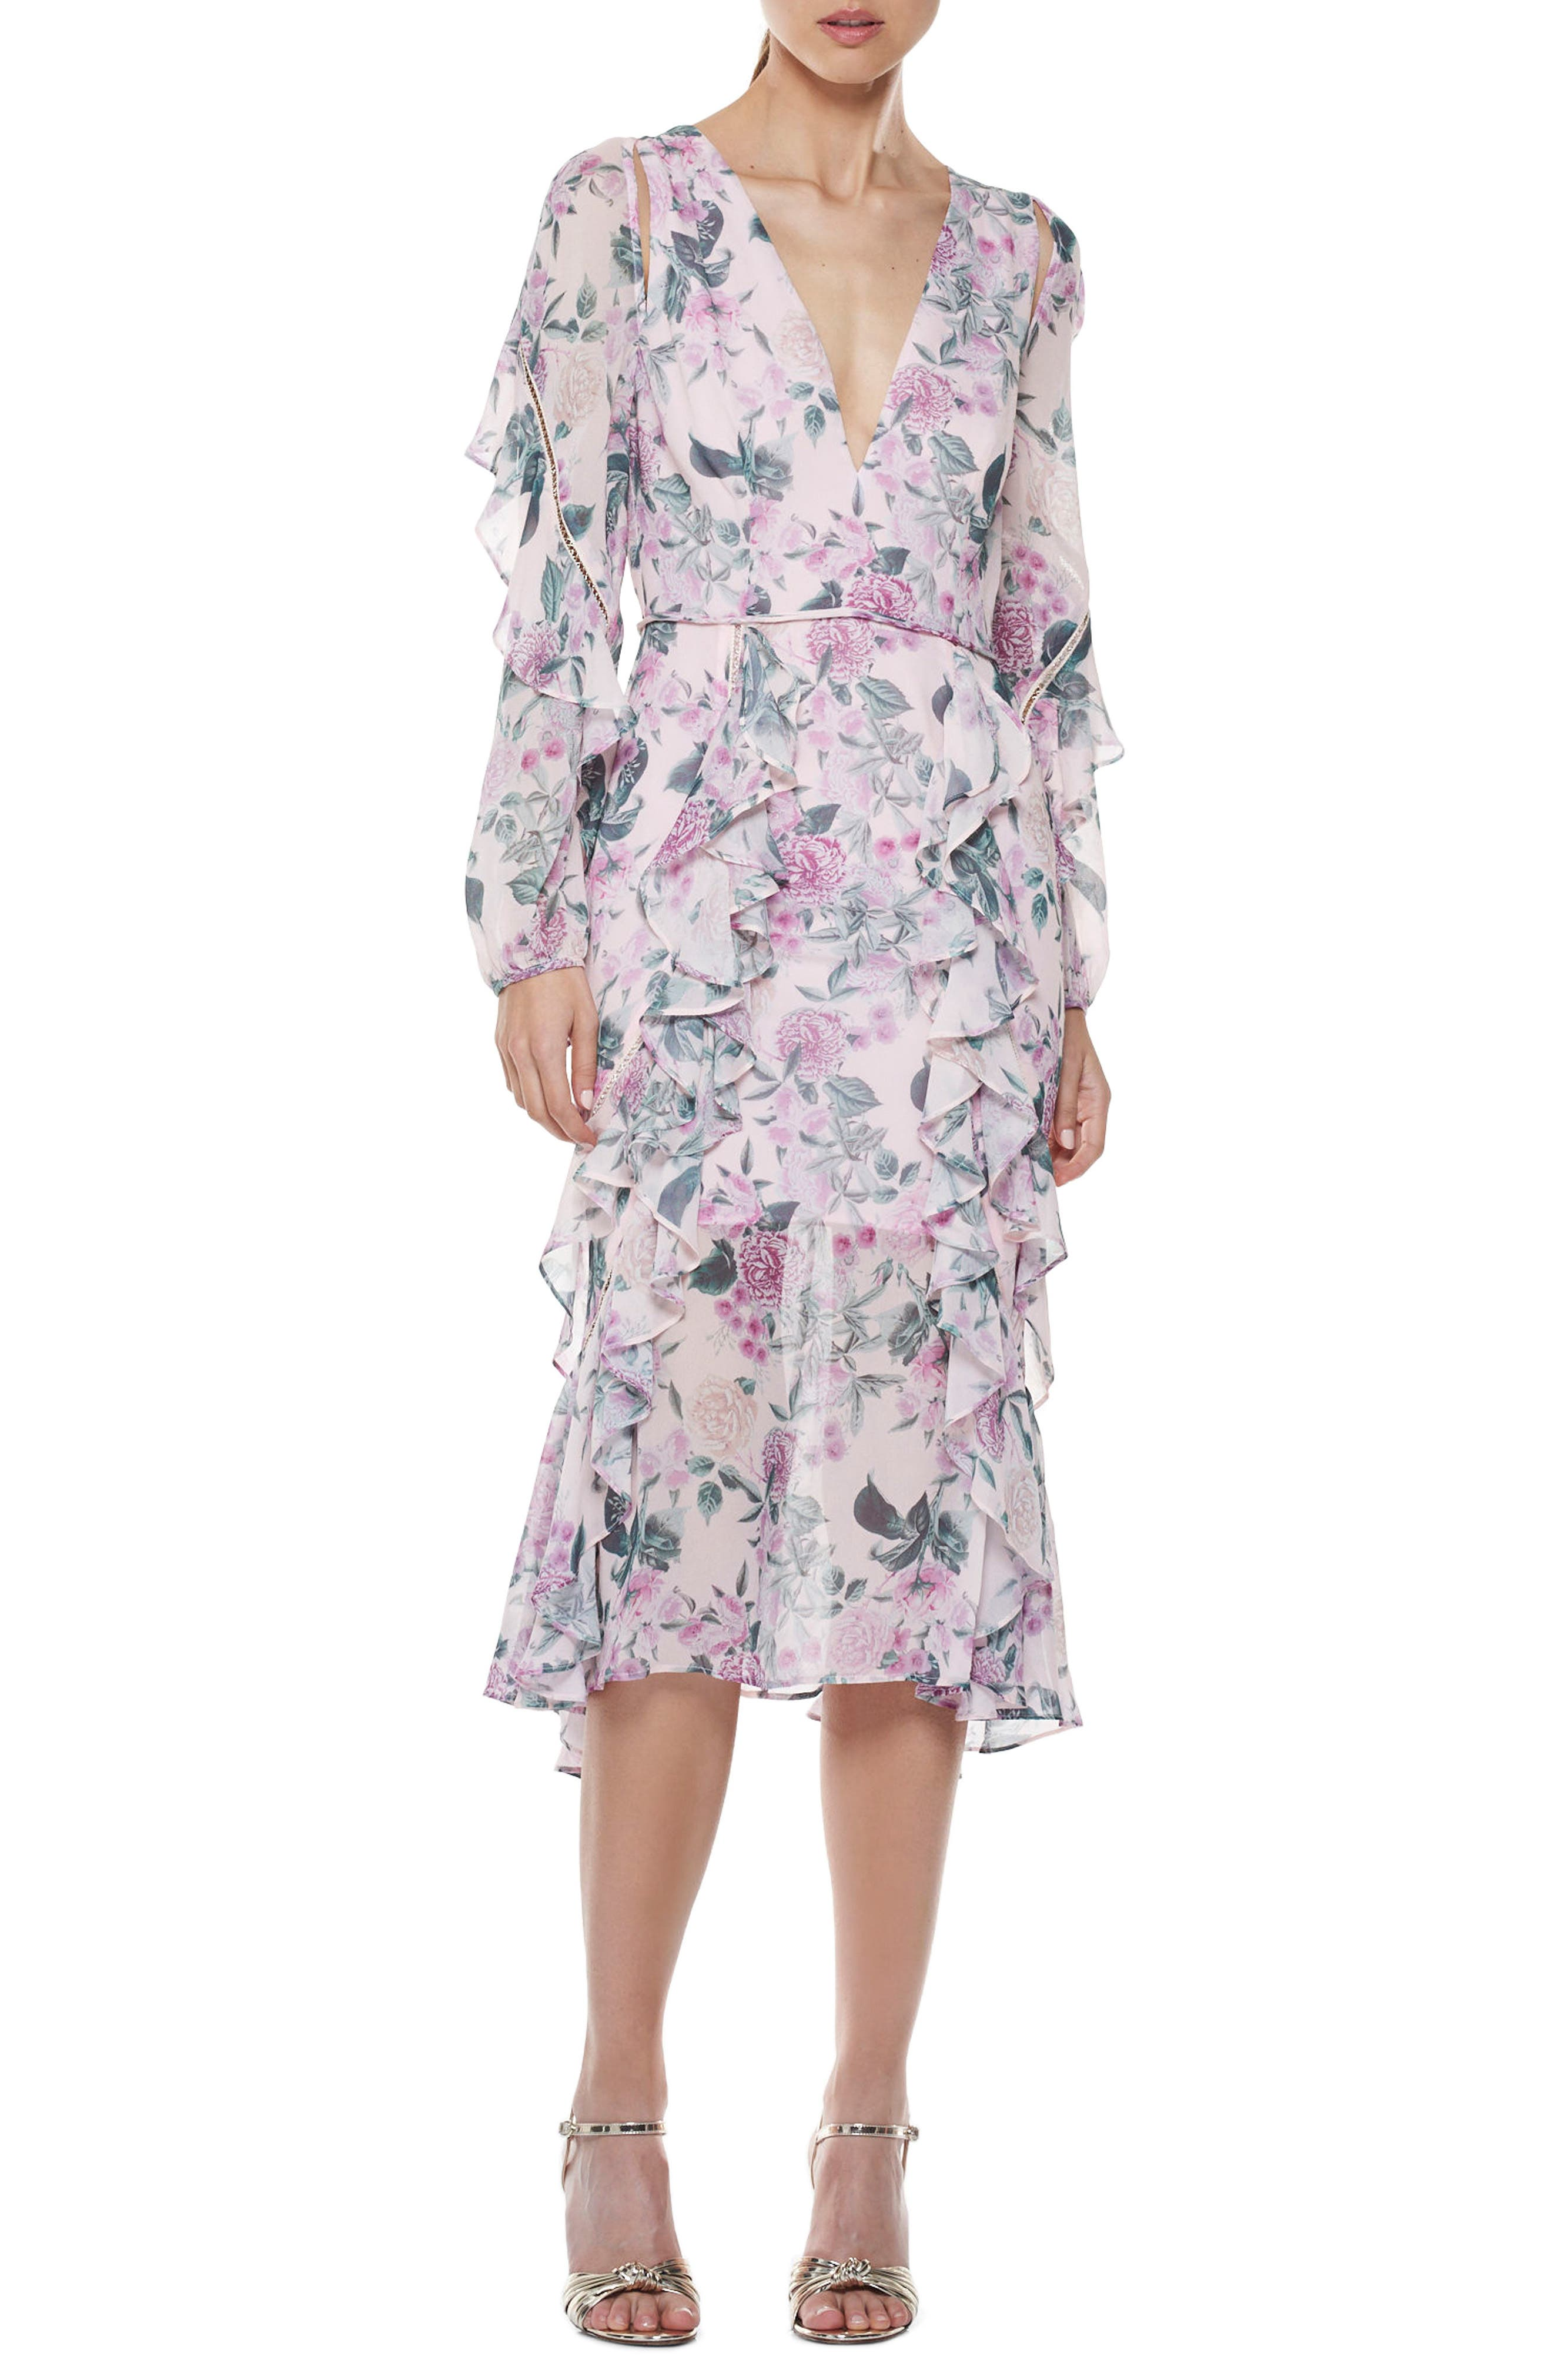 Floral Pleasure Midi Dress,                             Main thumbnail 1, color,                             680